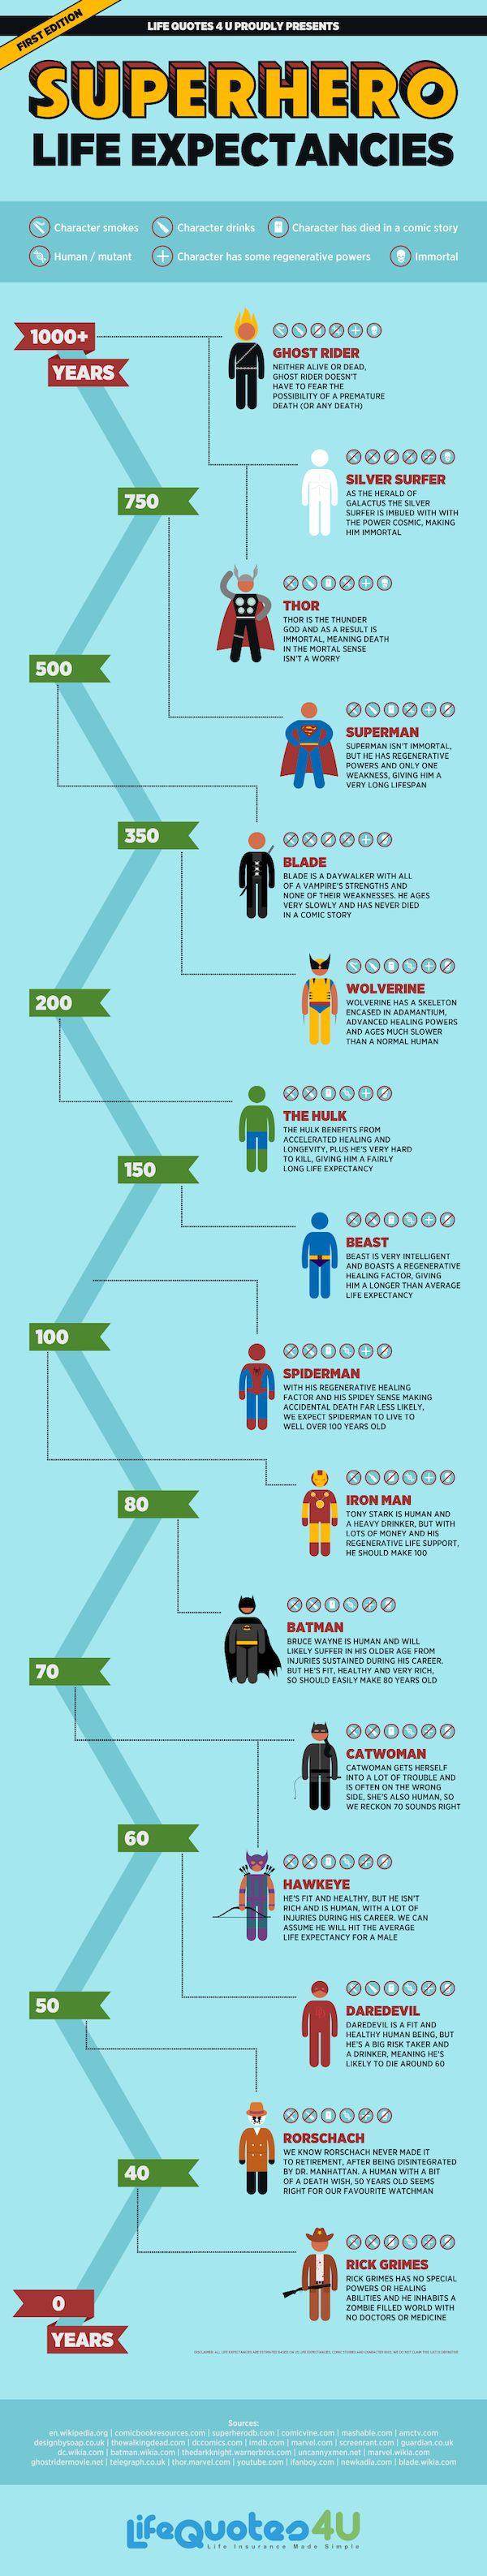 Infographic: The Life Expectancies Of Superheroes